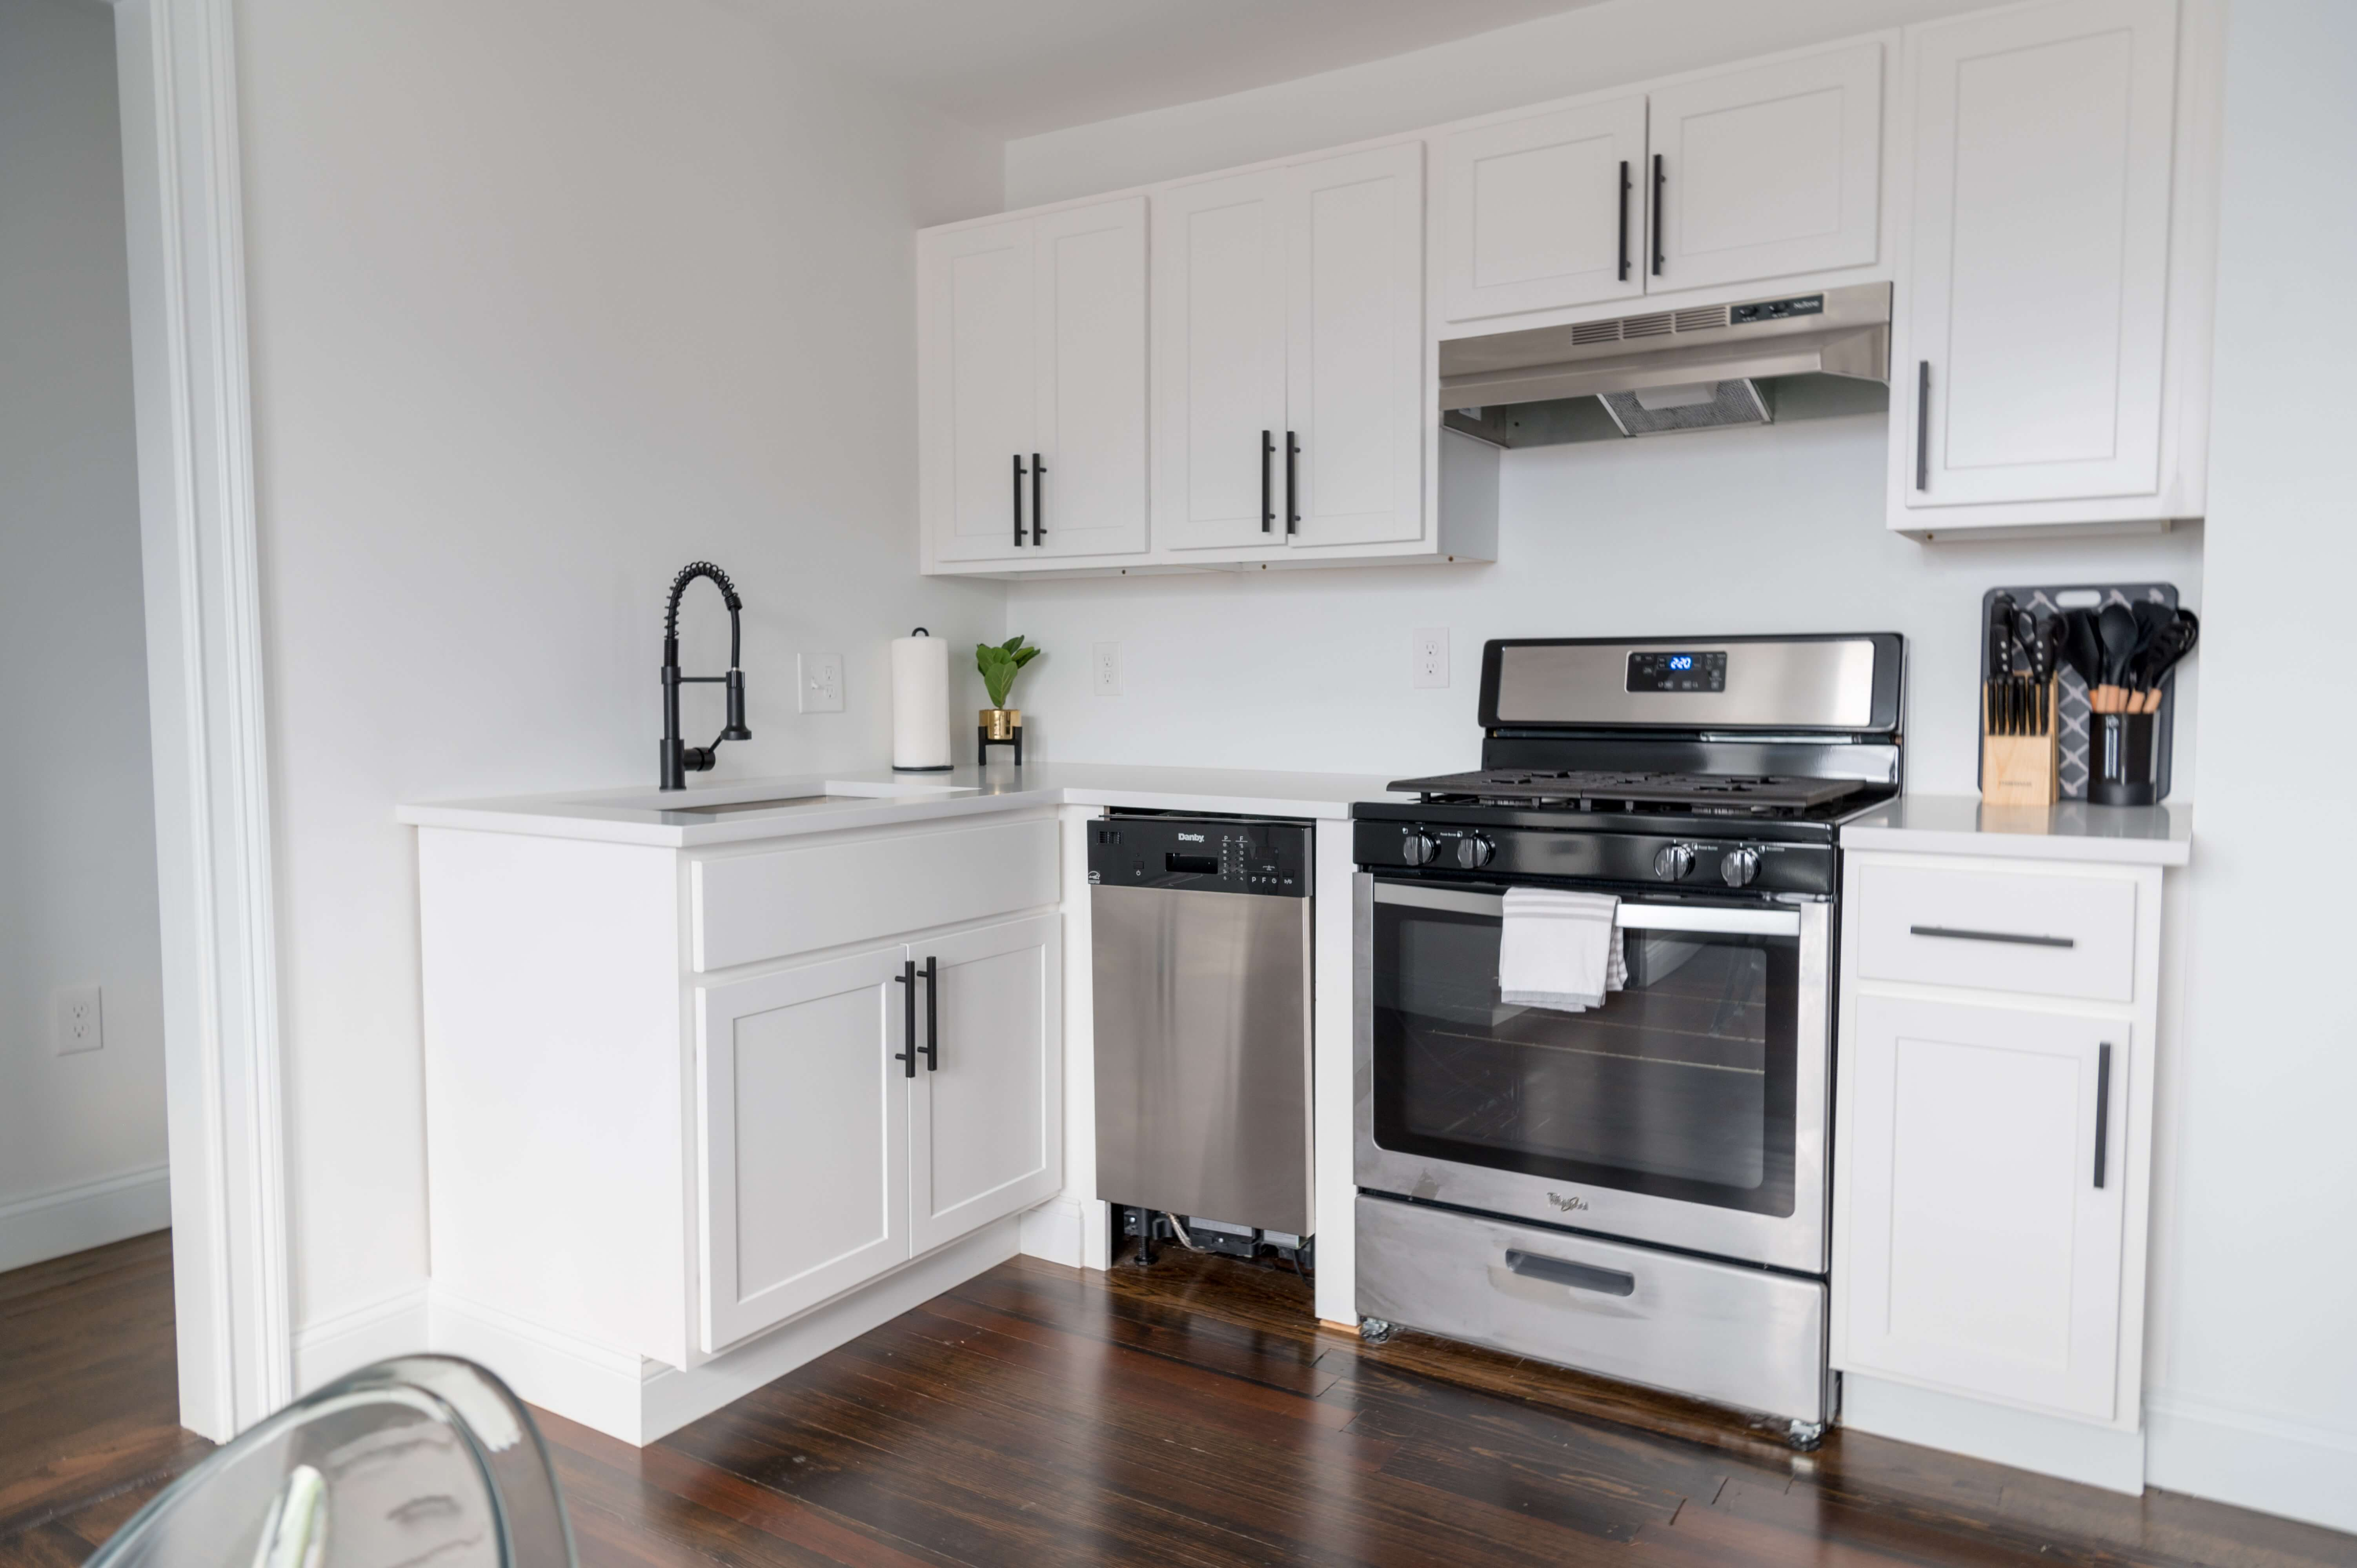 downsizing to an apartment